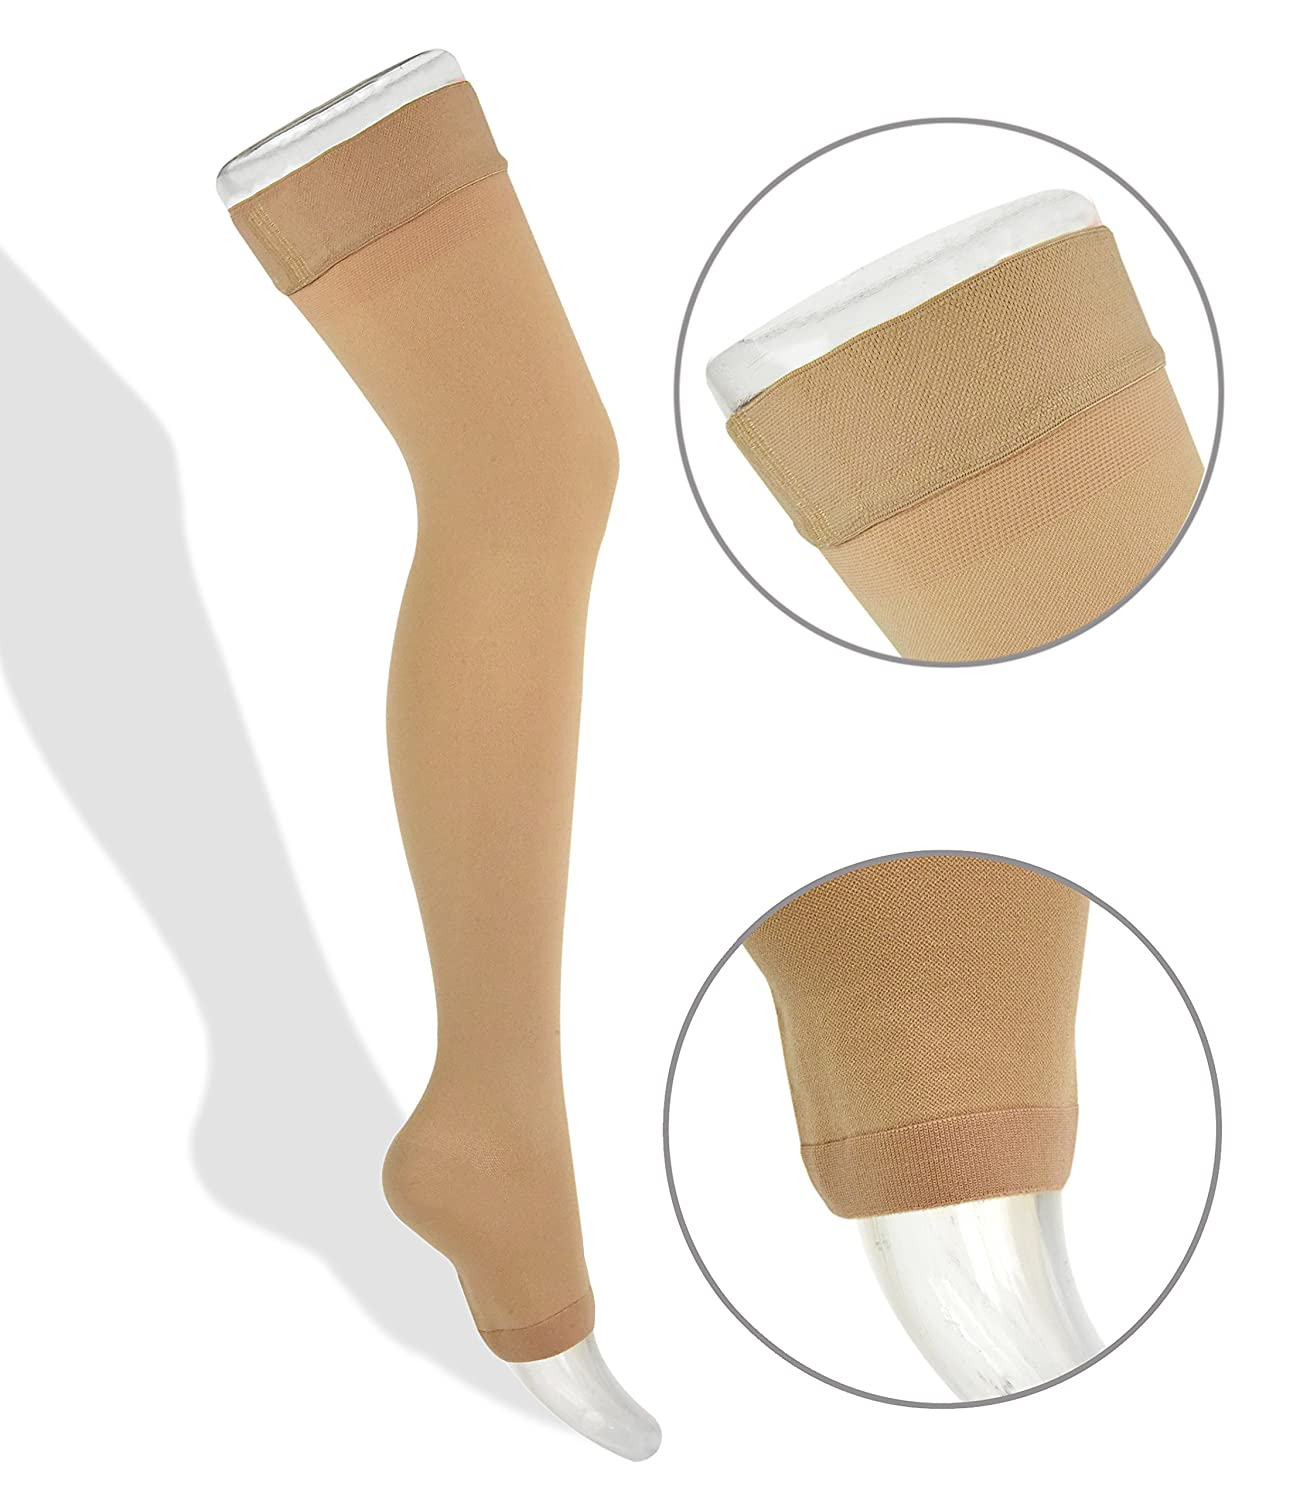 736a656cd Amazon.com: Thigh High Compression Stockings 20-30mmHg with Open Toe for  Men and Women from Lemon Hero - FDA Registered - Best Leg Support Hose for  Varicose ...